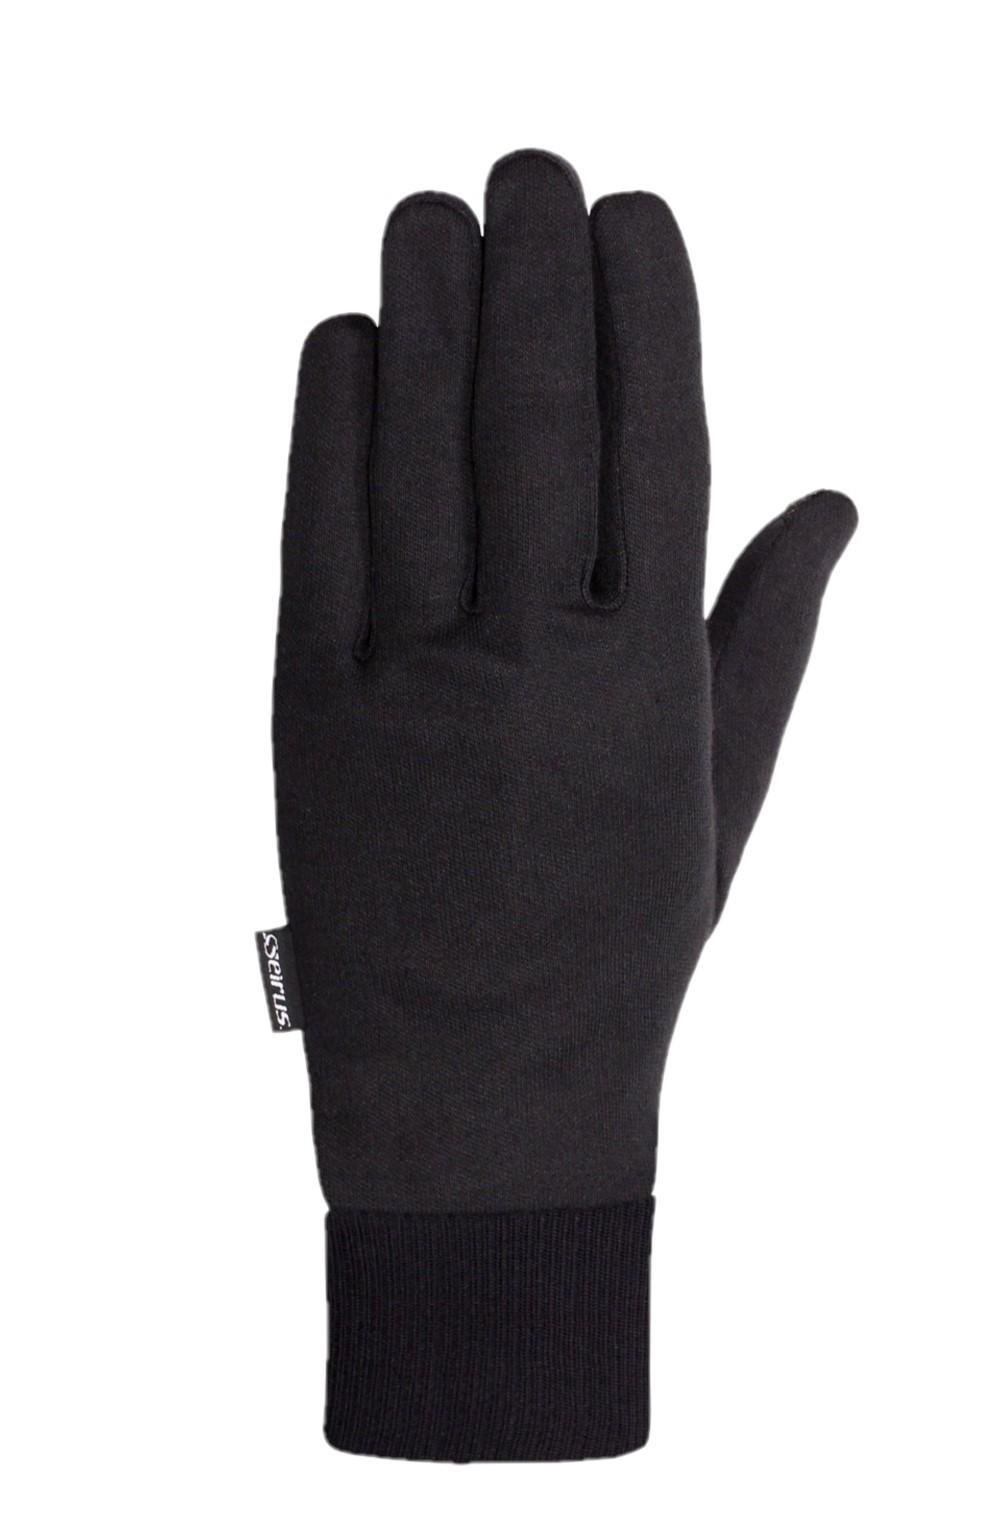 Seirus Thermax glove liner in black